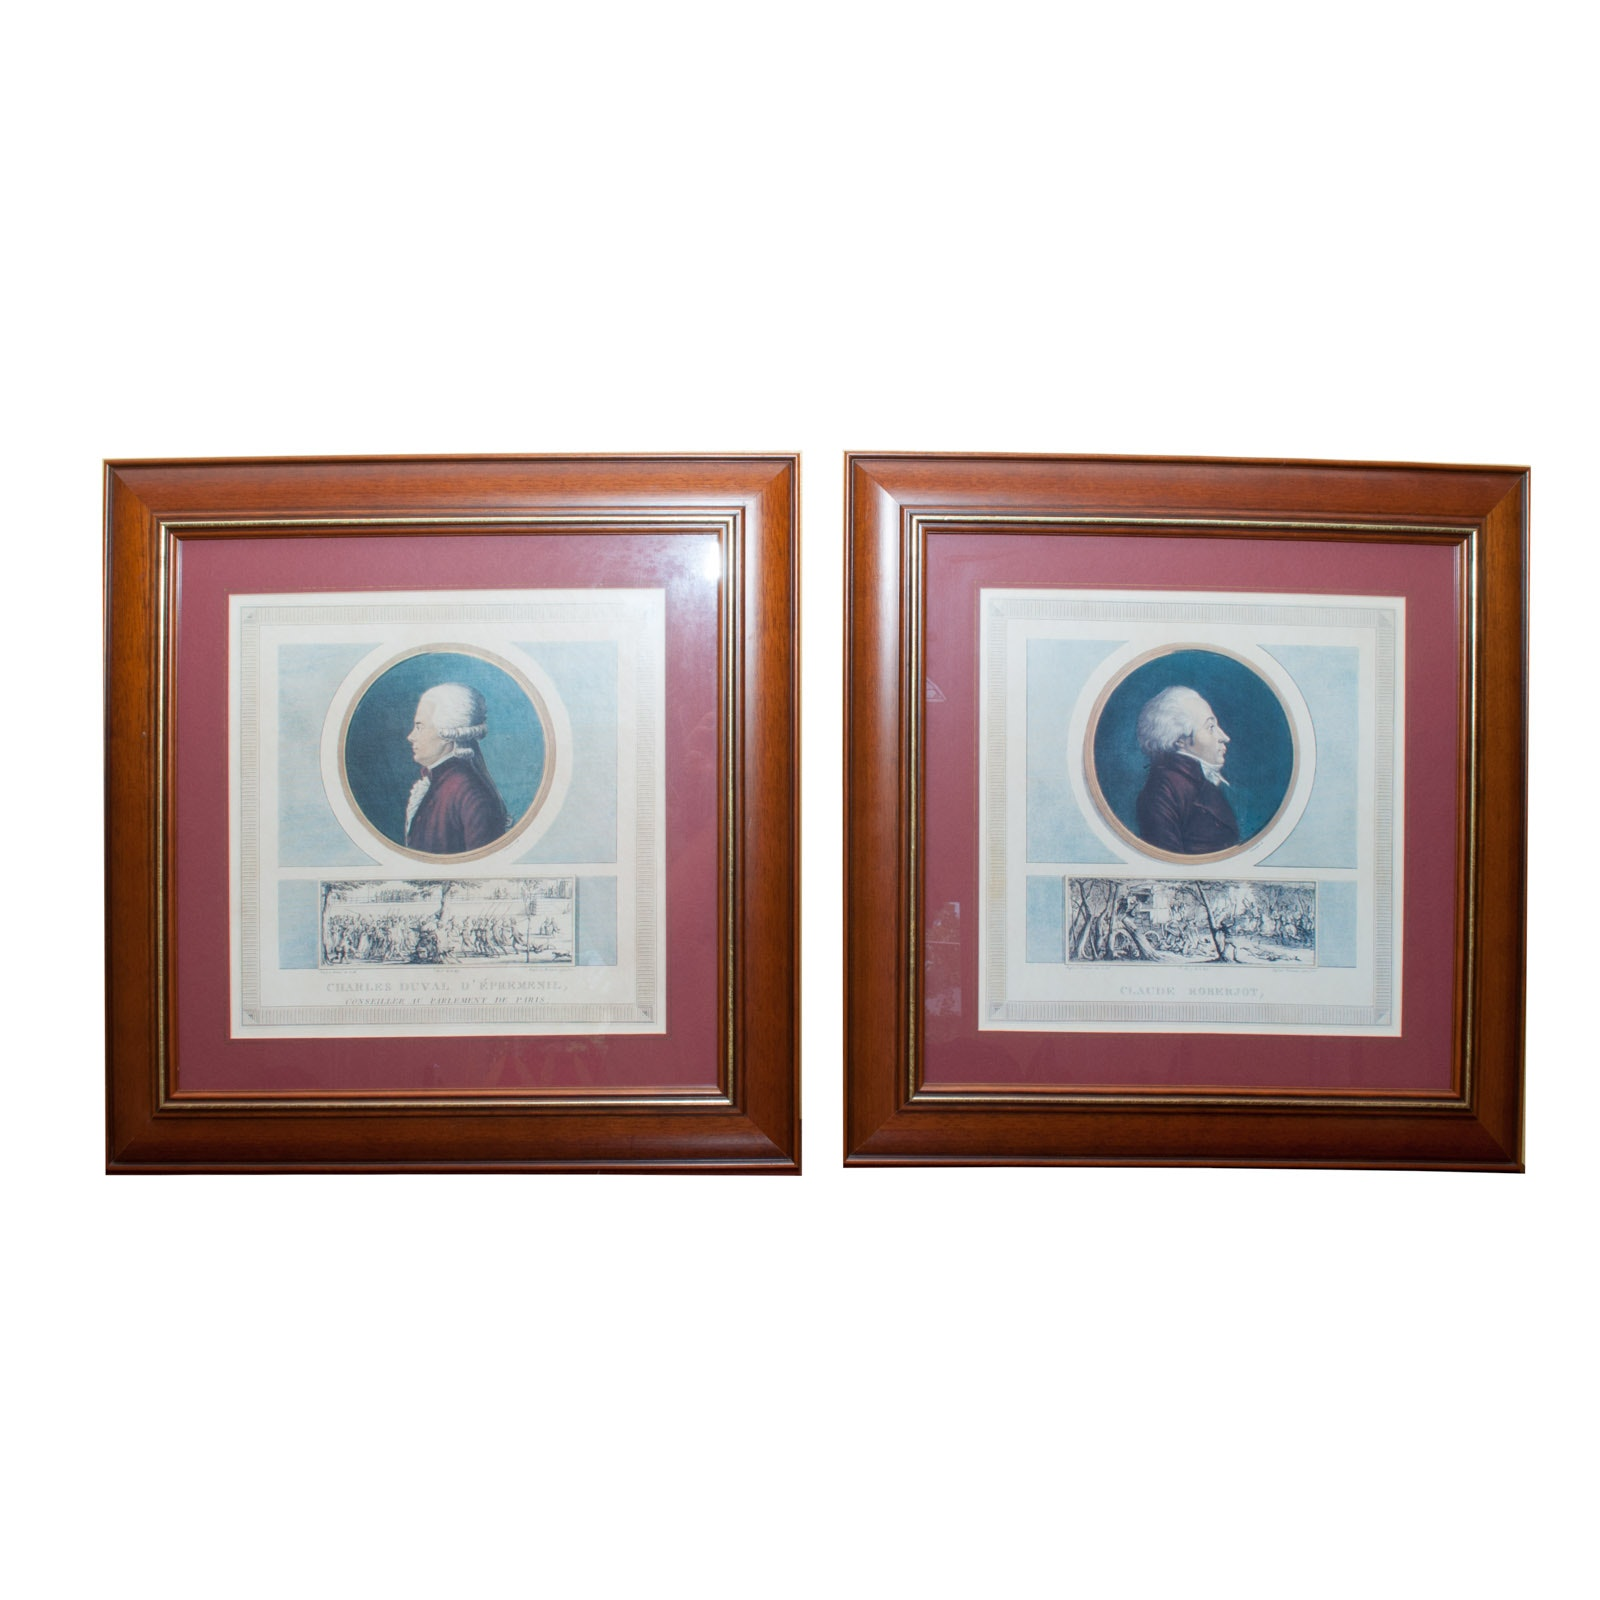 Offset Lithographs After 18th Century Colored Engravings